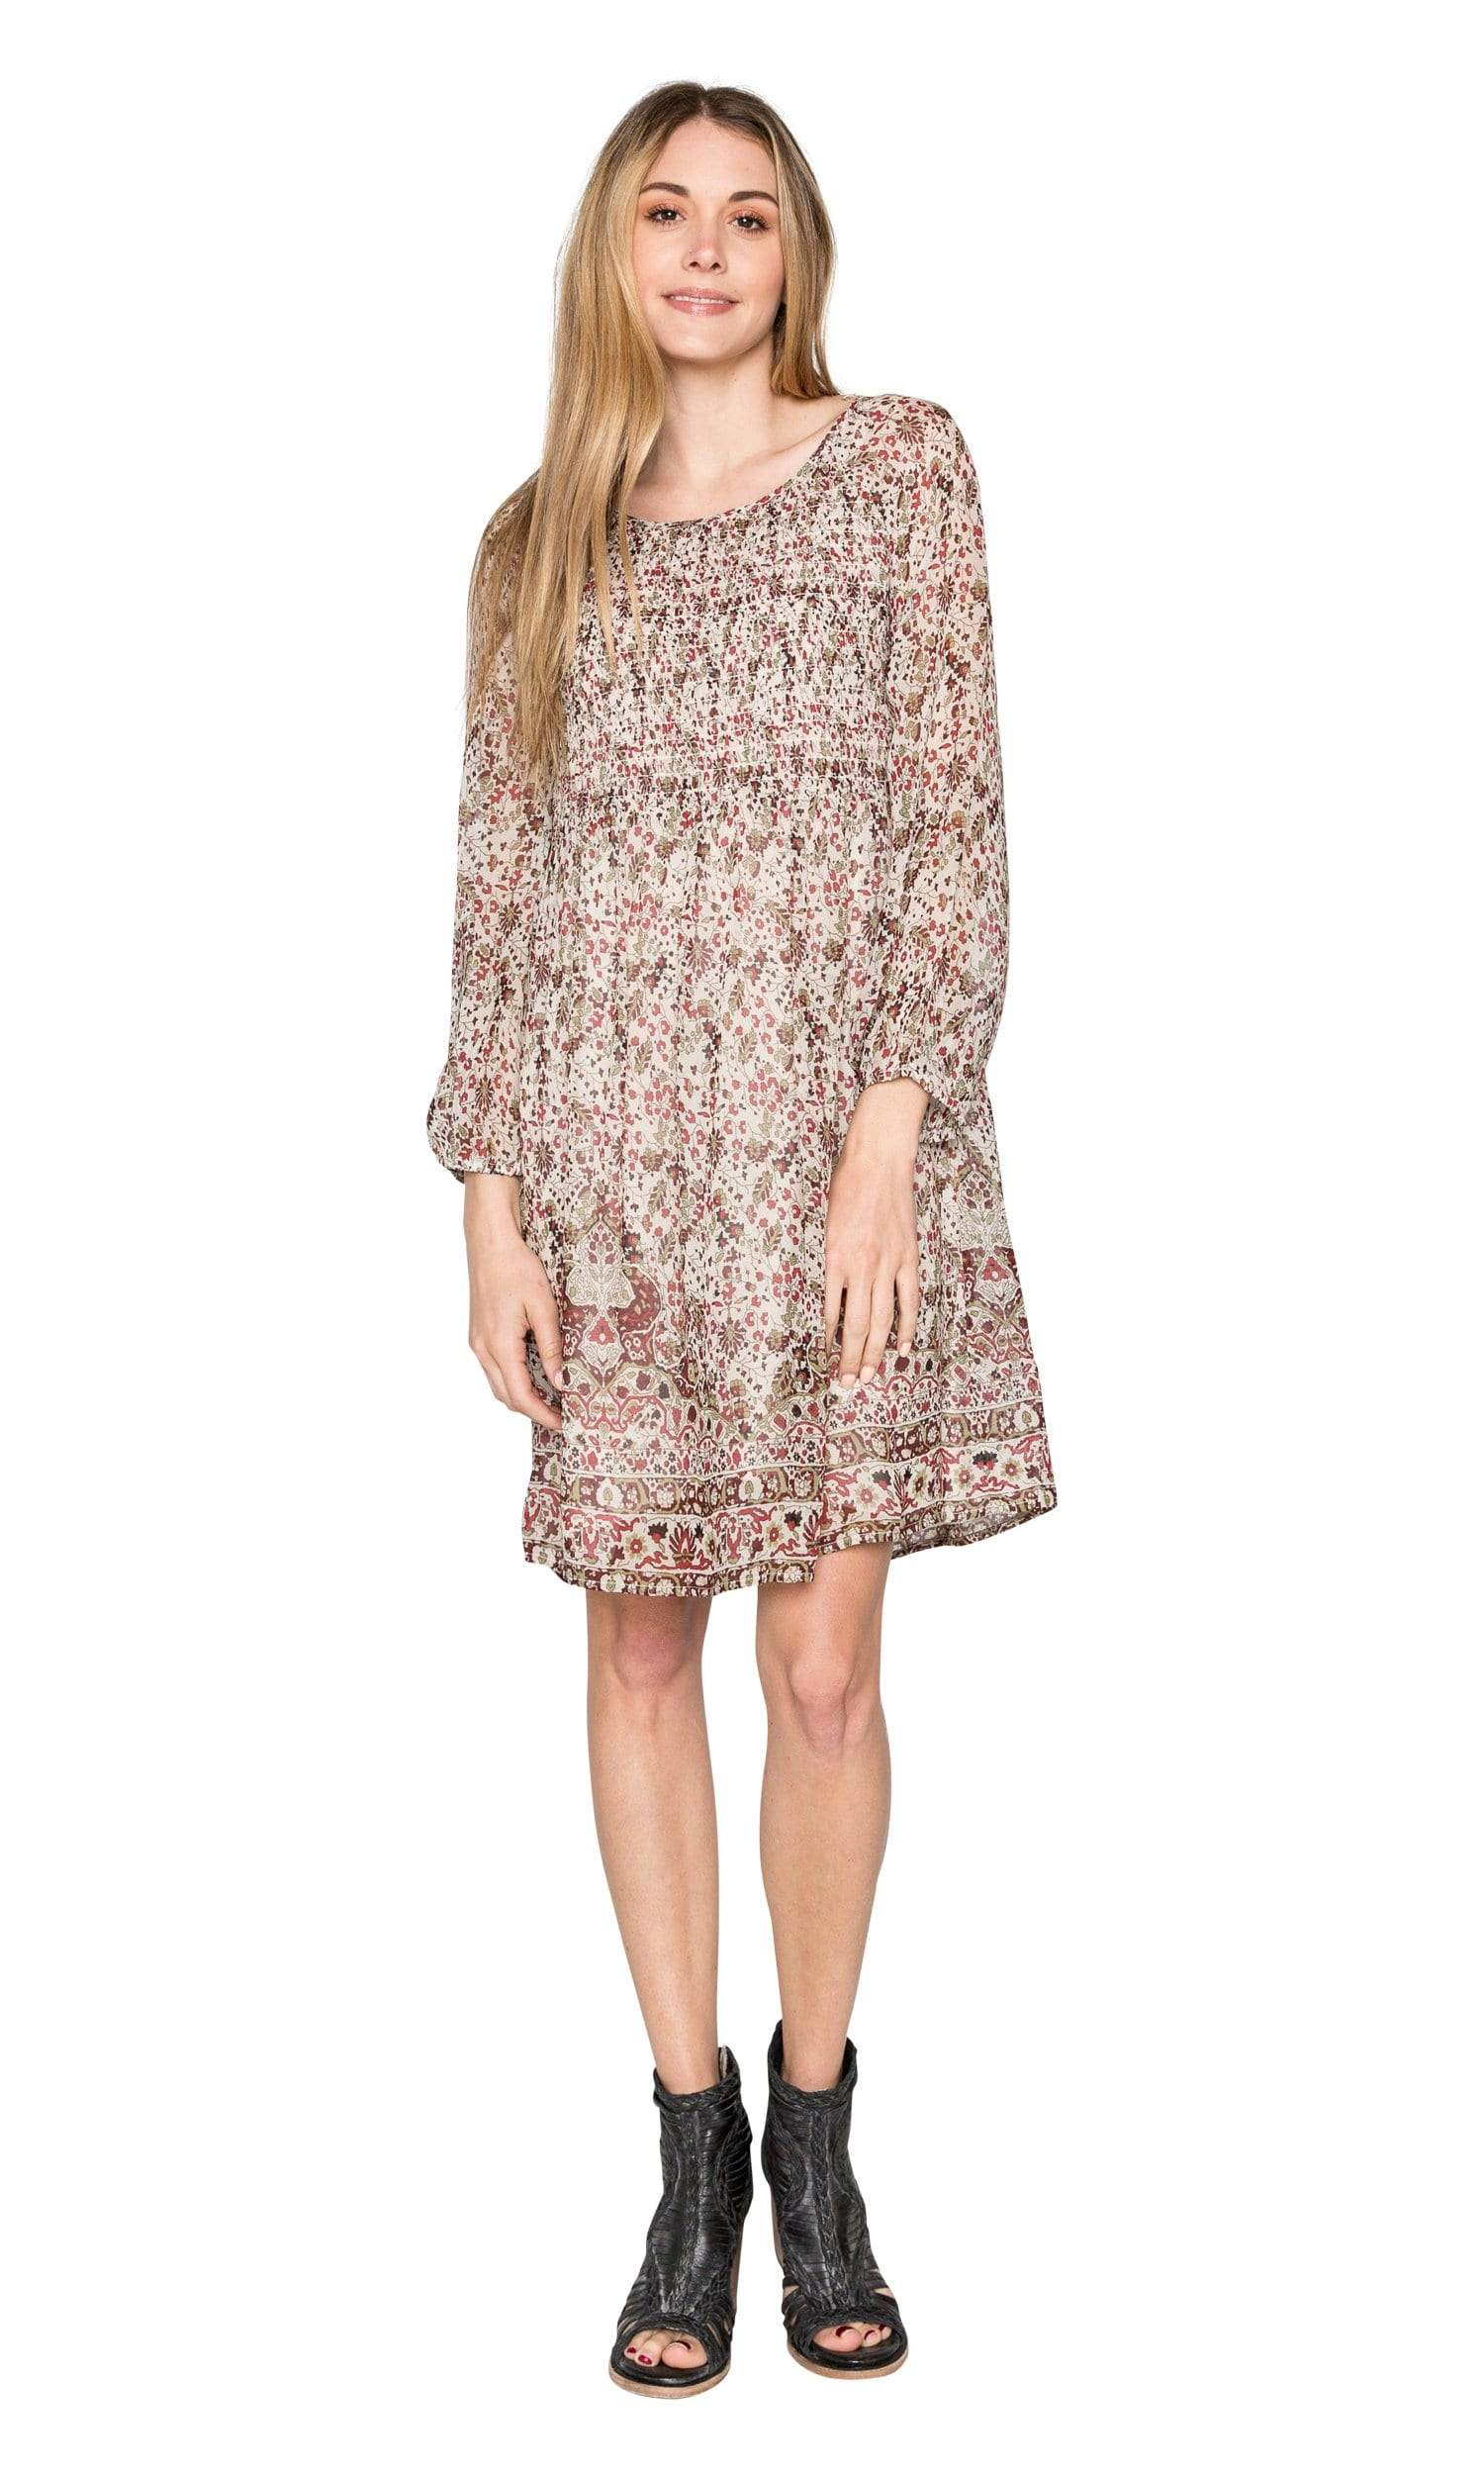 Velvet by Graham & Spencer Ariana Printed Smocked Dress